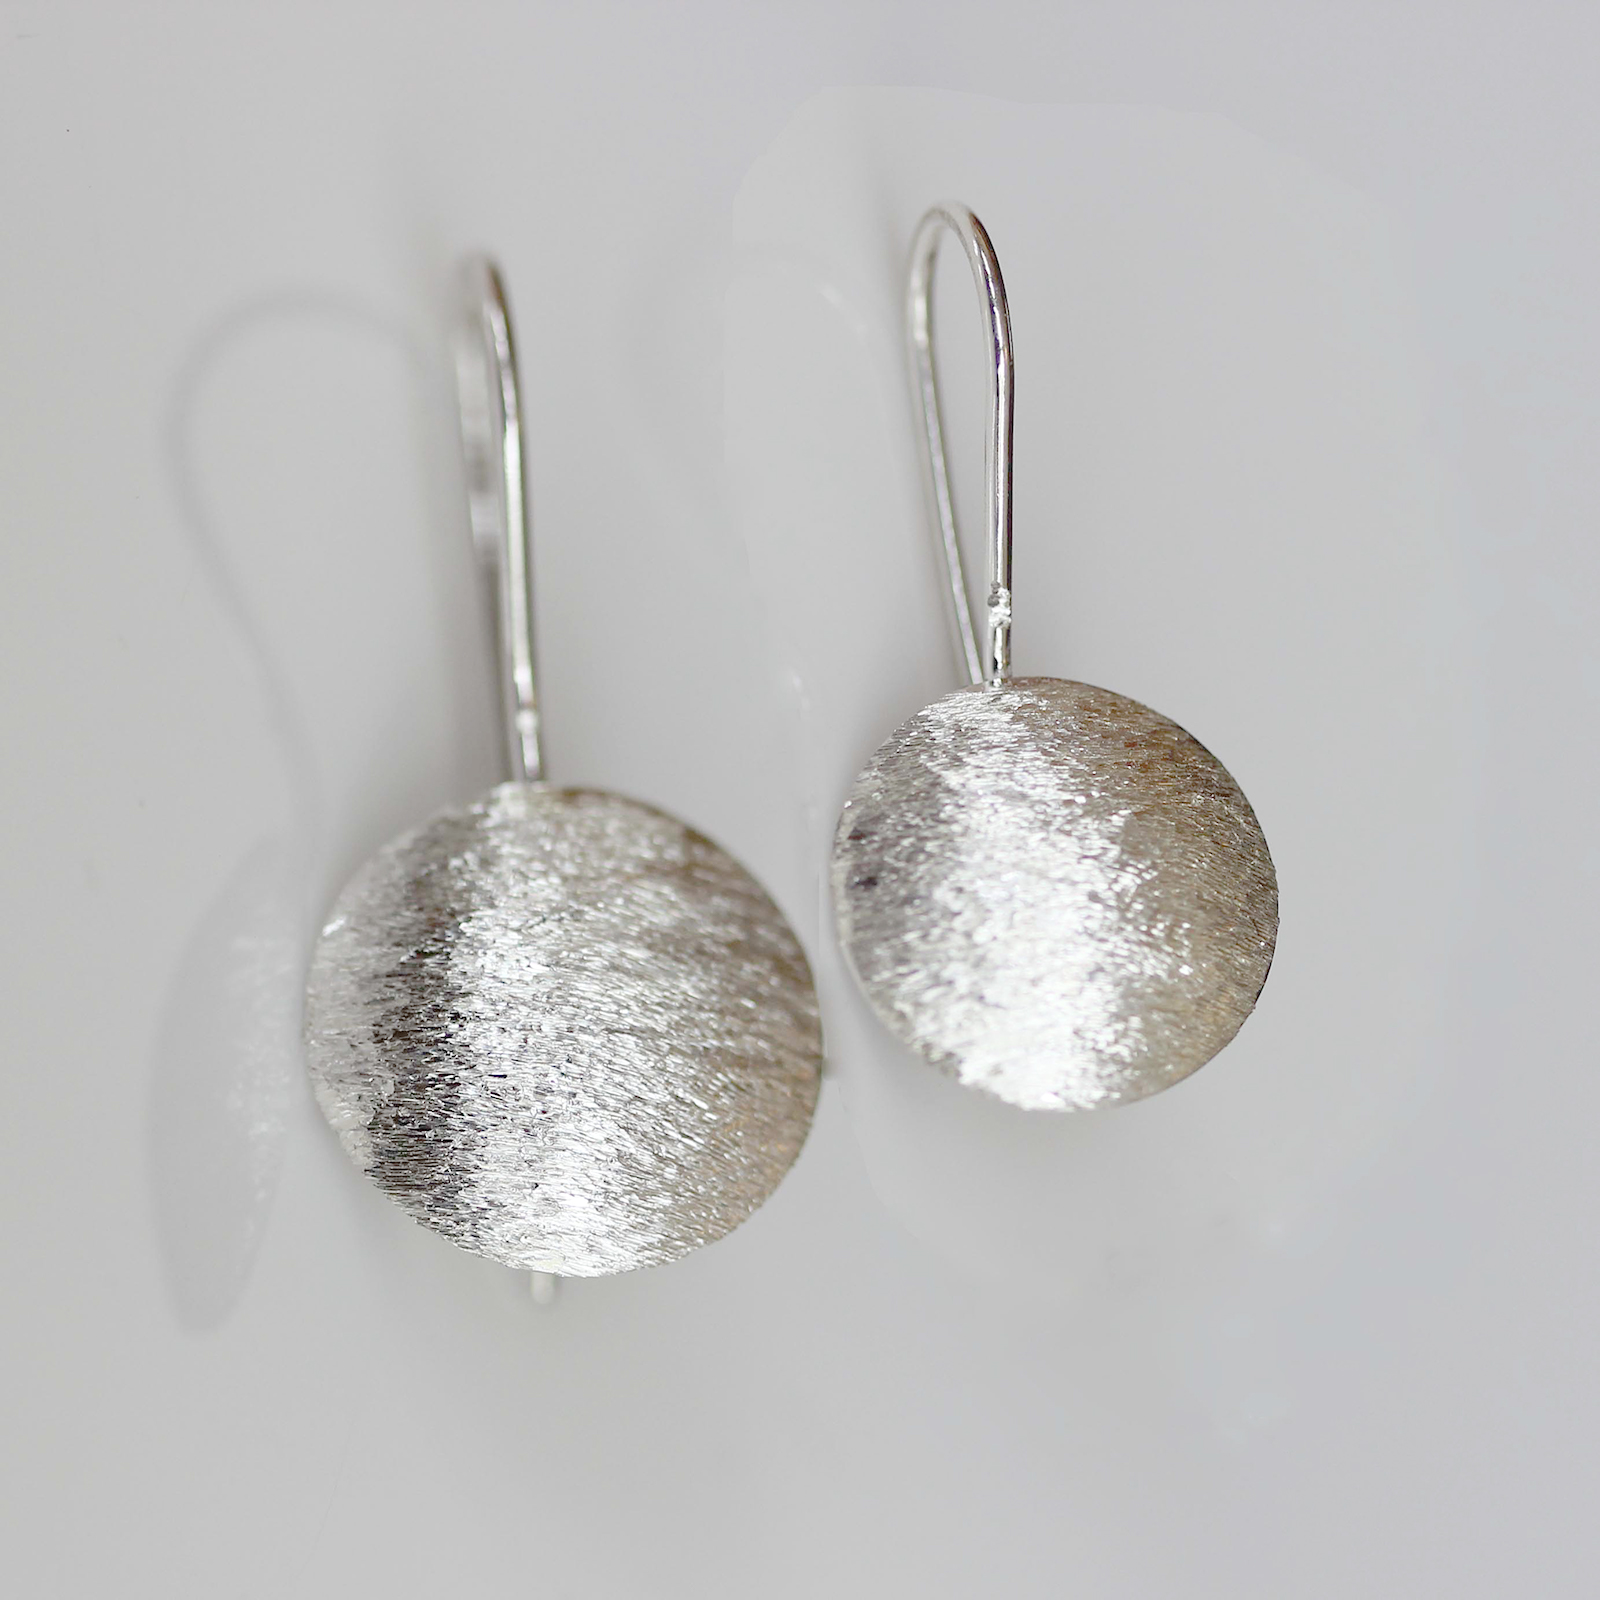 Textured convex earrings